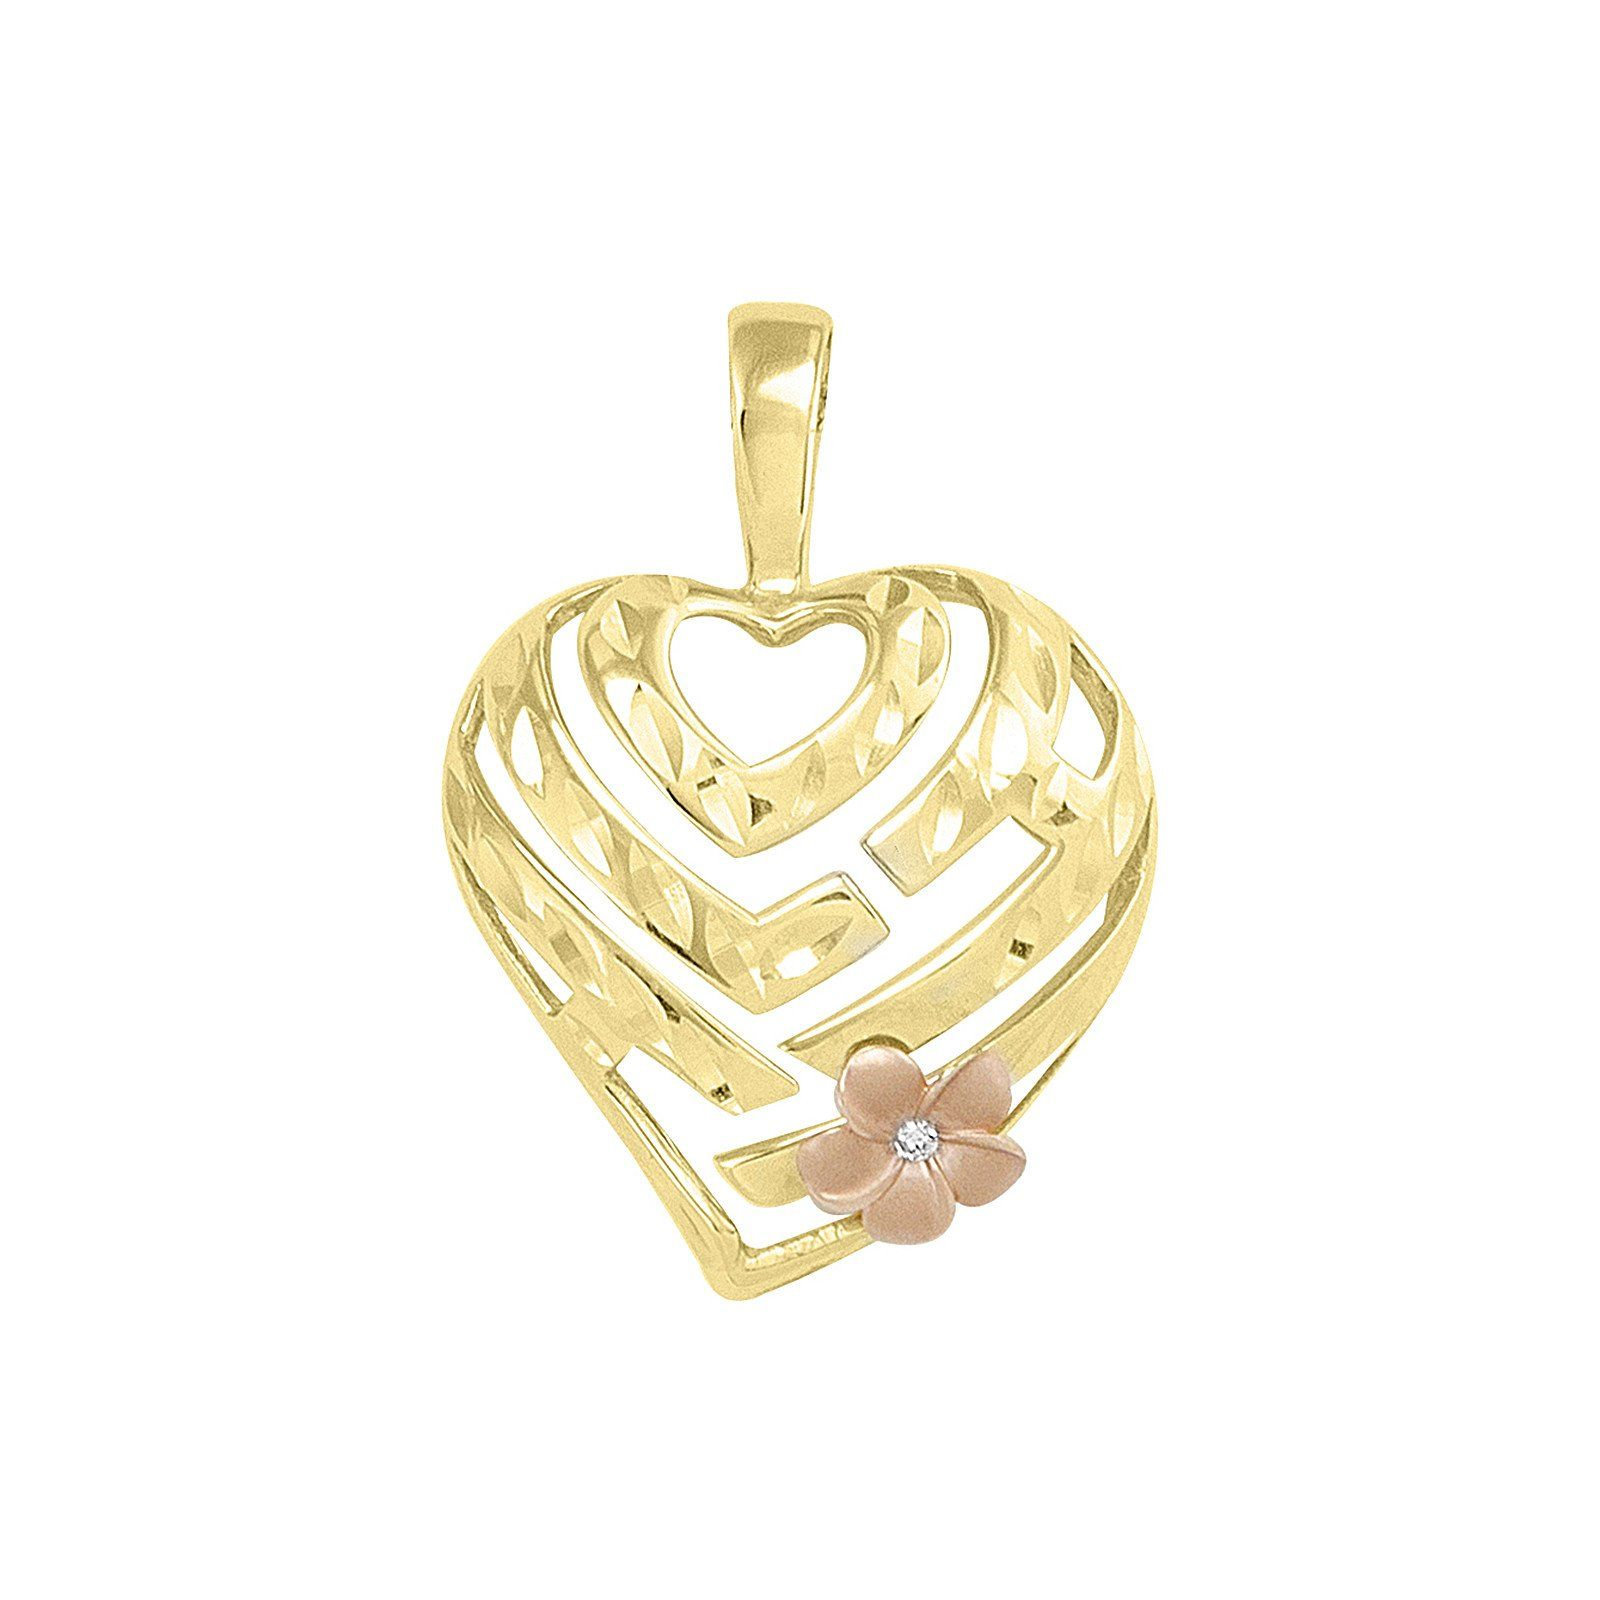 Aloha Heart Pendant with Diamond in K Yellow u Rose Gold mm